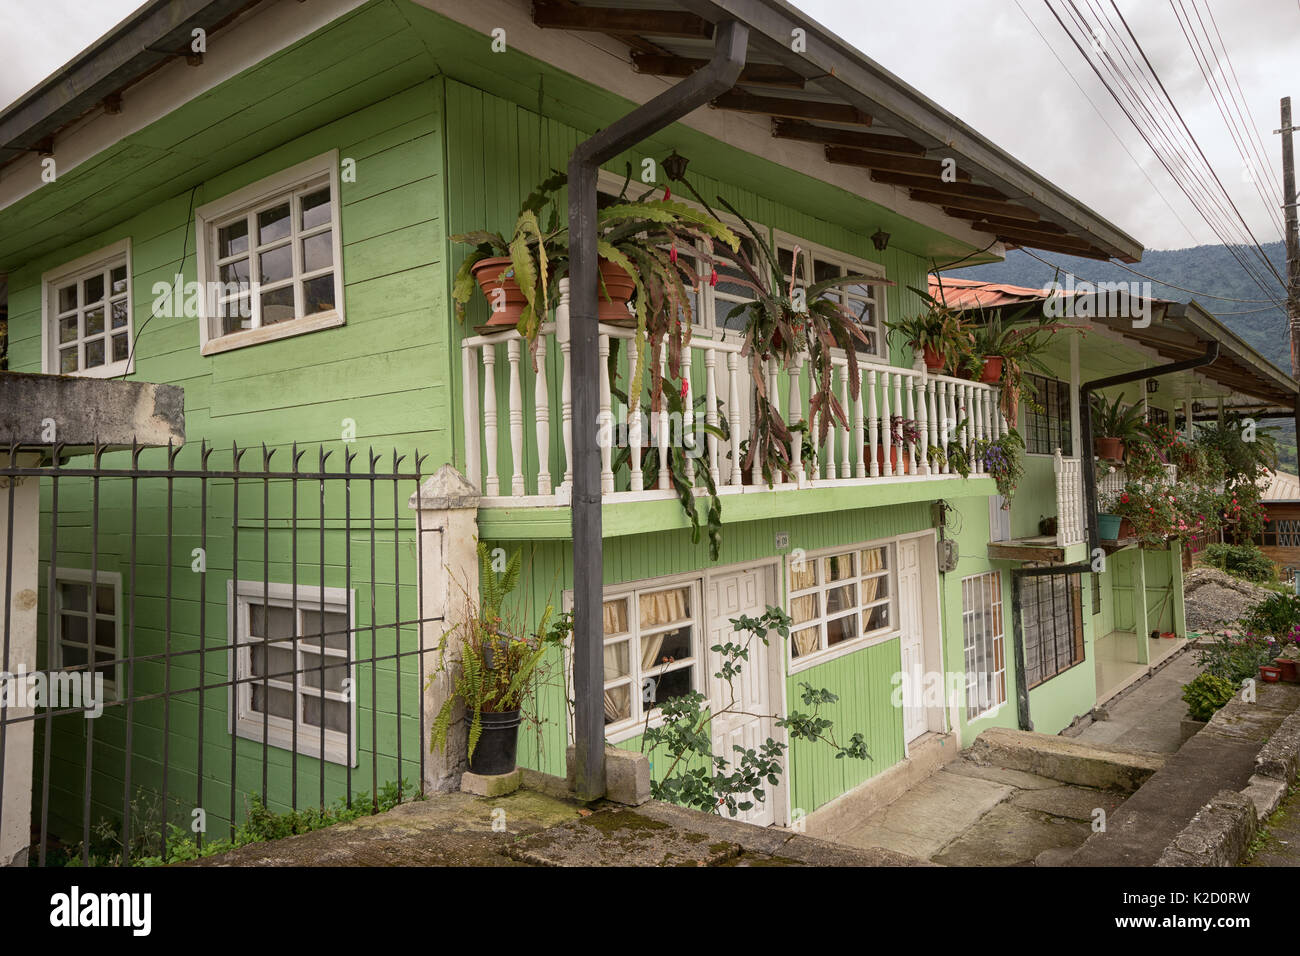 June 8, 2017 Baeza, Ecuador: the mountain town is known for its small ccolorful historic town centre with wood plank houses and as a gateway to advent - Stock Image